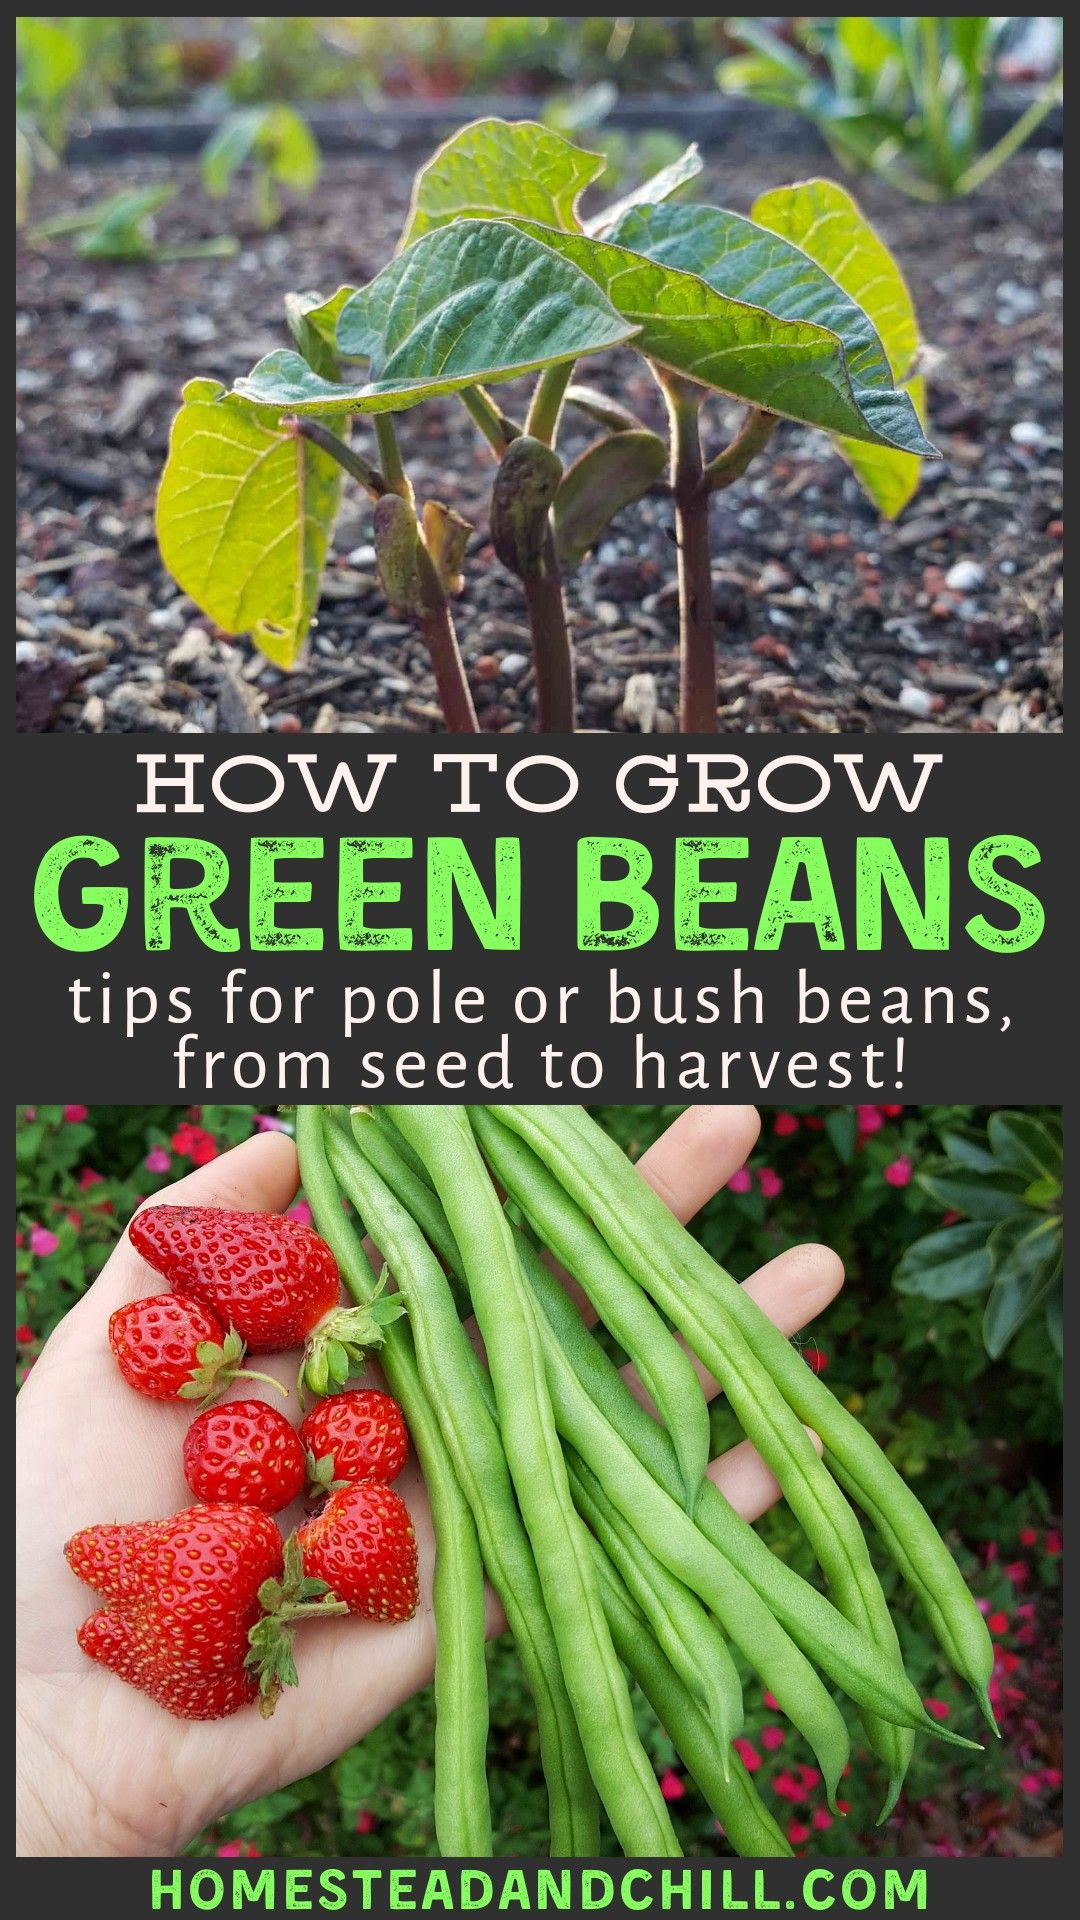 How To Grow Bushels Of Beans From Seed Bush Beans Pole Beans Homestead And Chill Bush Beans Growing Bush Beans Green Bean Seeds